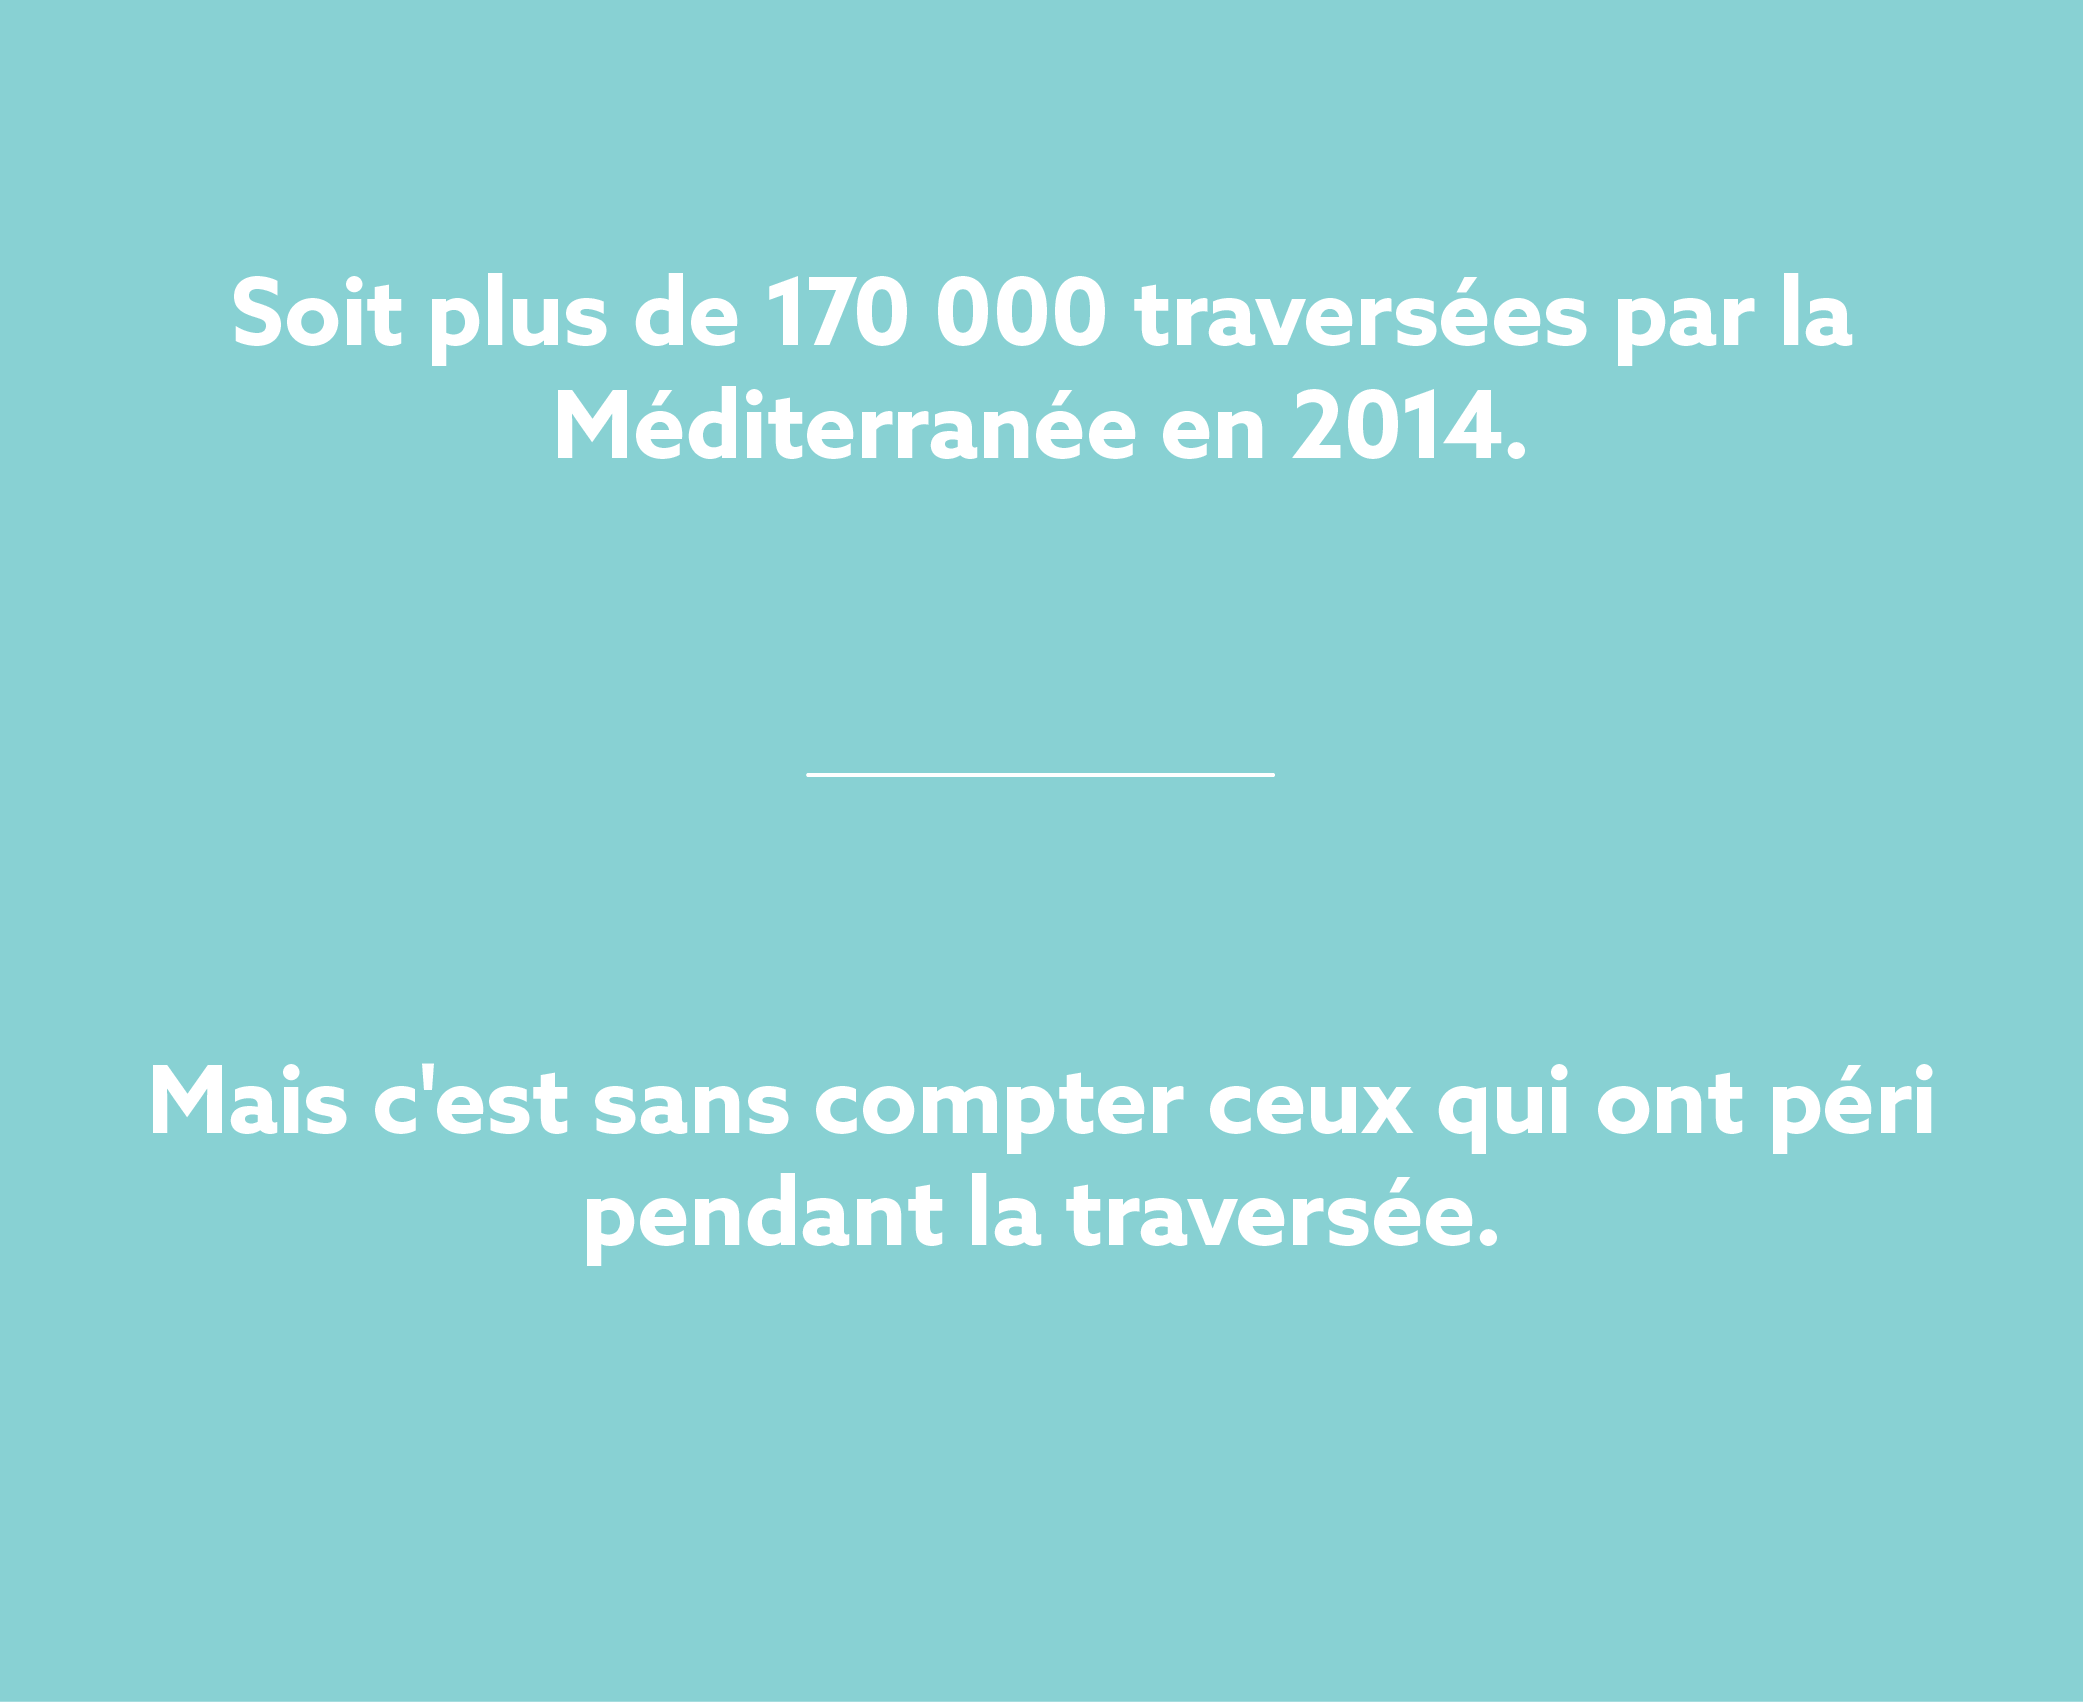 FRENCH_Migrants_Organized-03.png